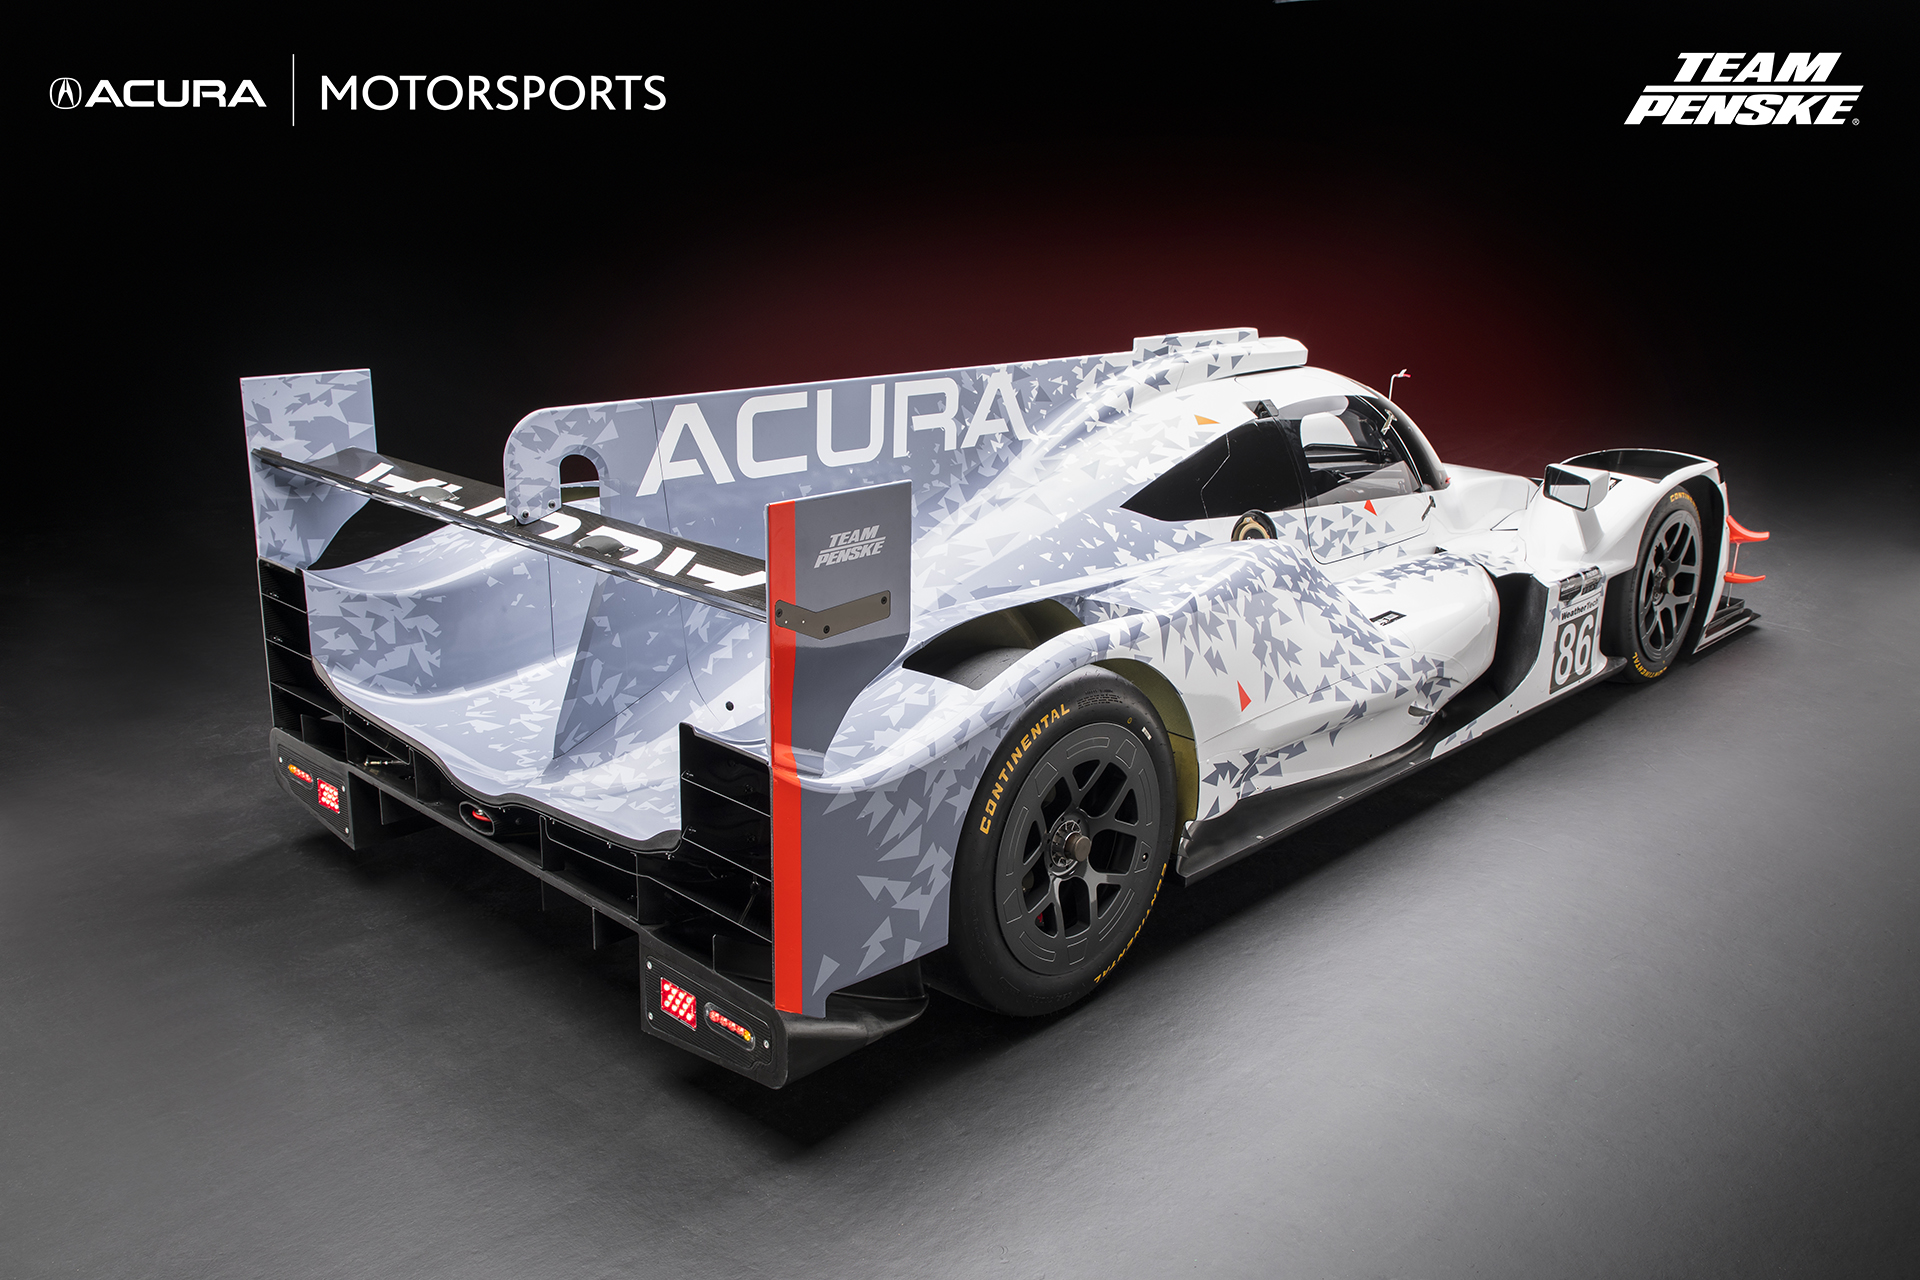 team penske unveils 2018 acura arx 05 dpi race car for imsa